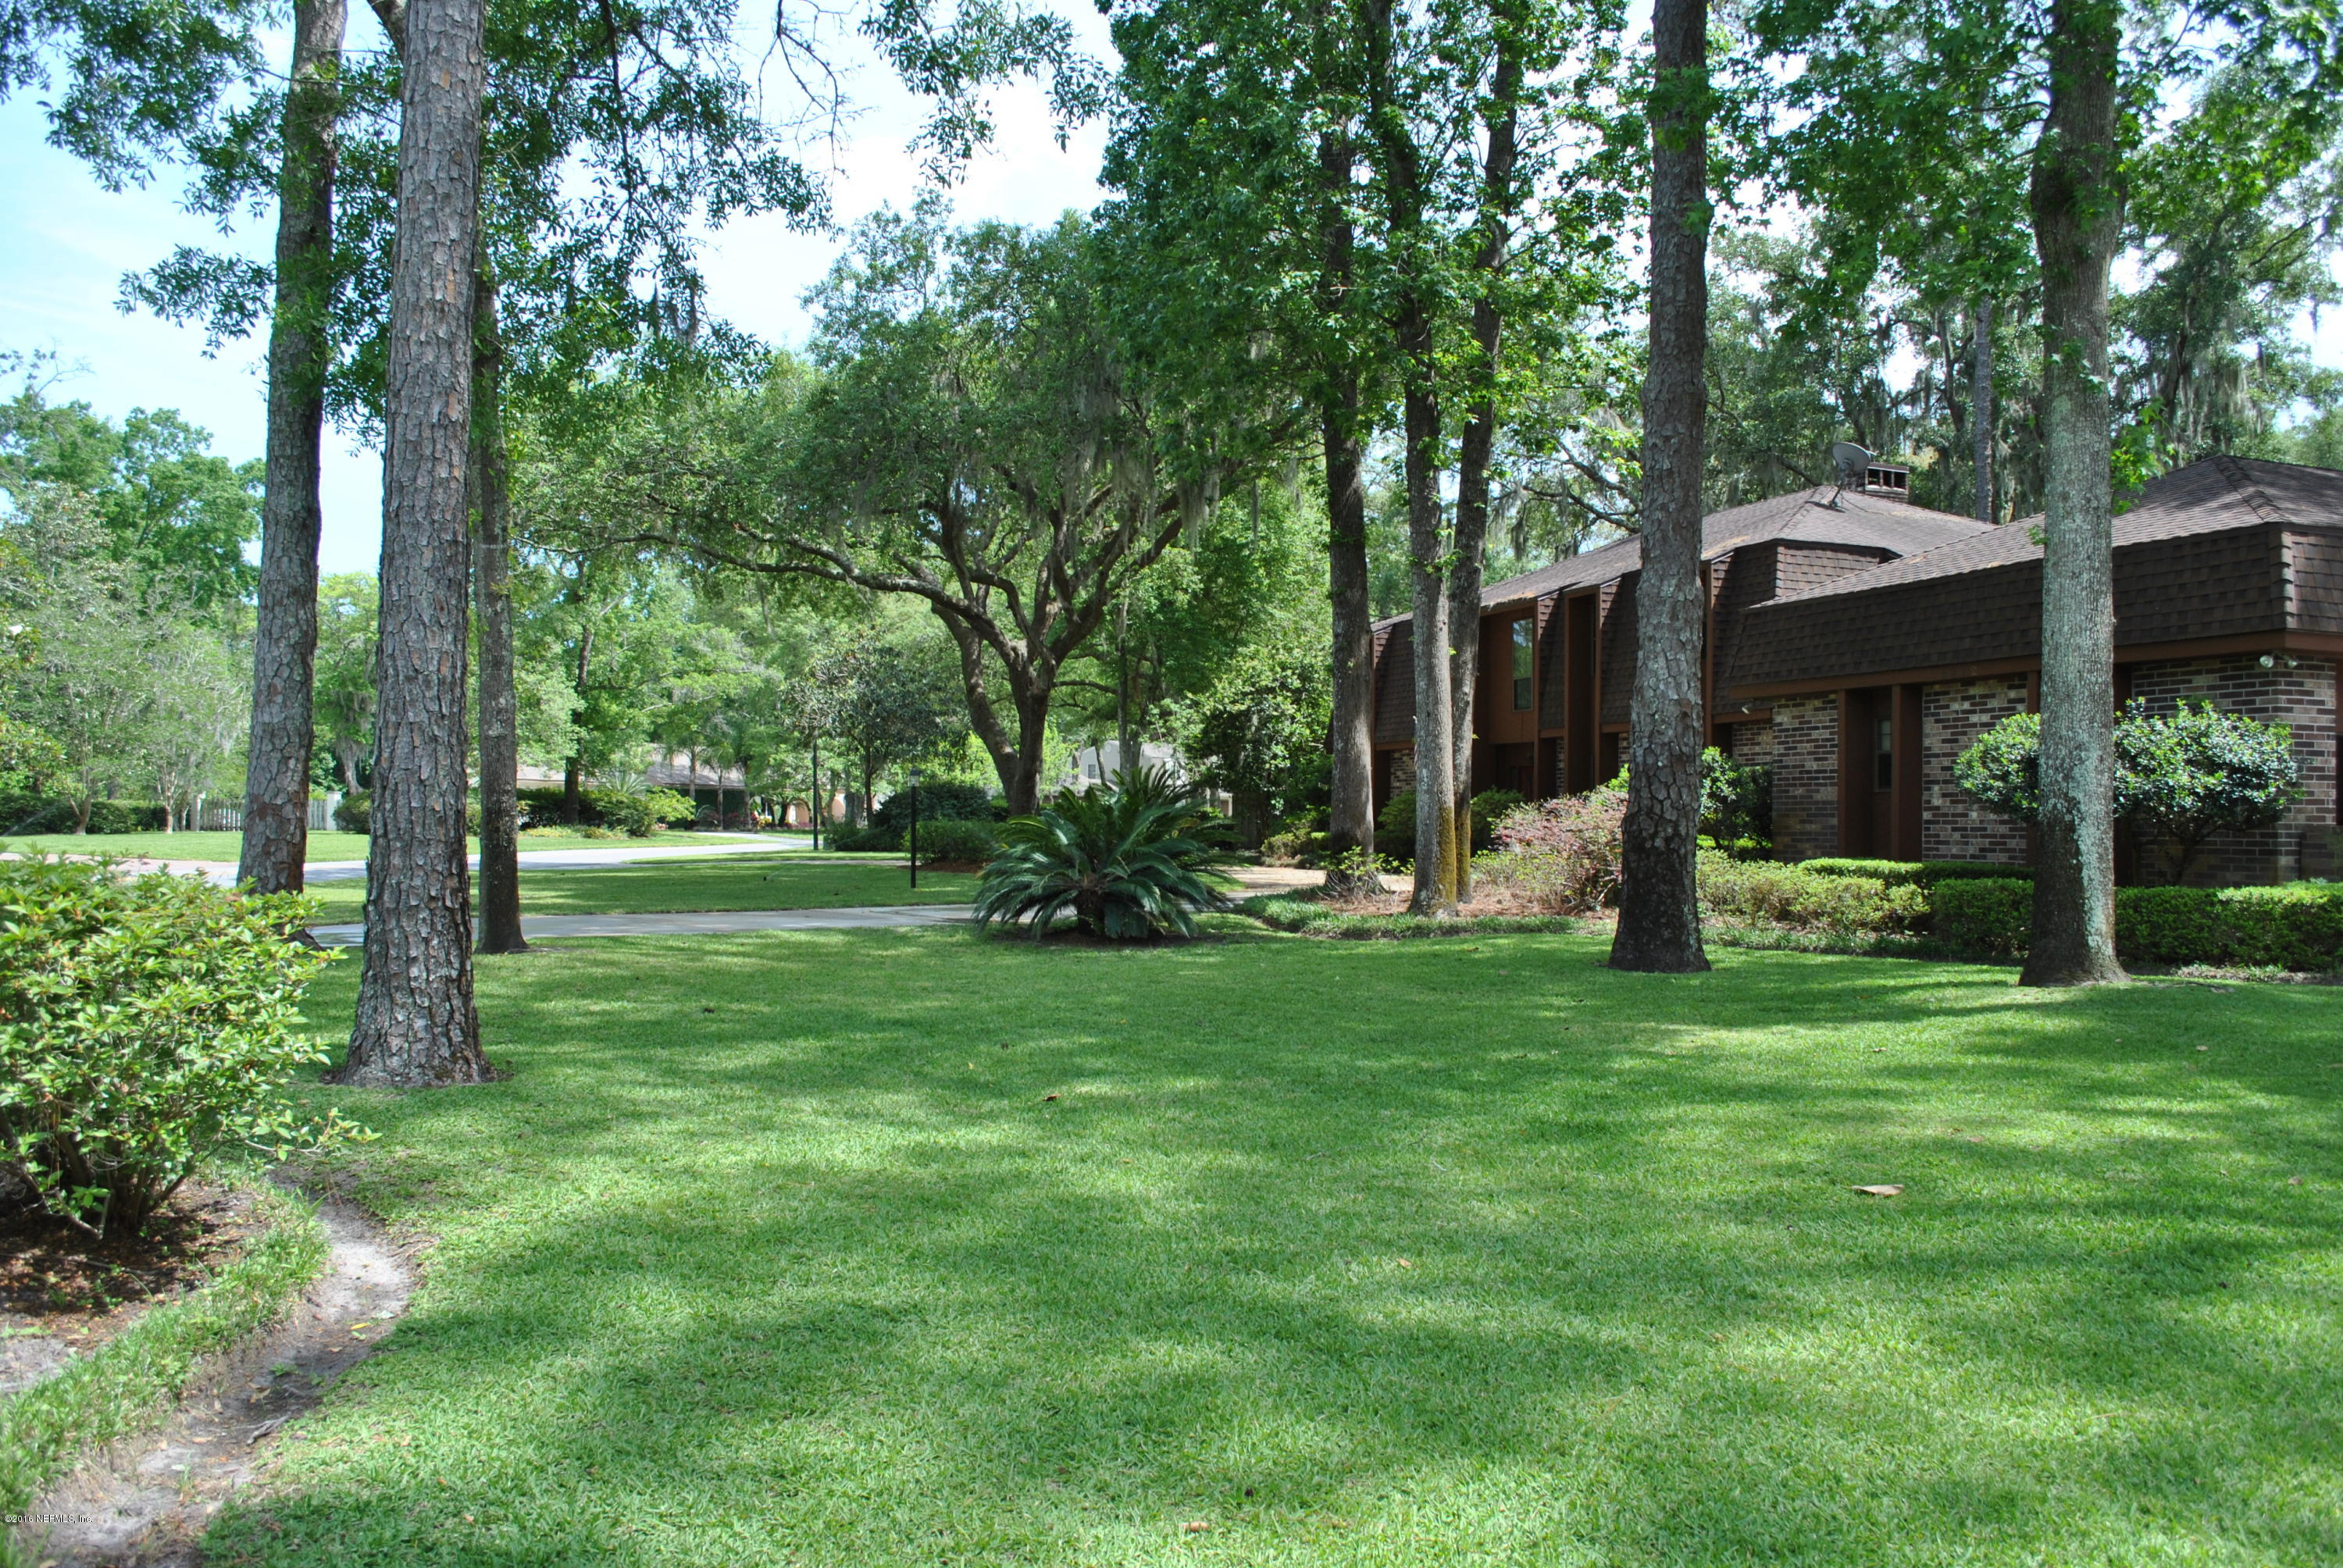 8012 SHADY GROVE, JACKSONVILLE, FLORIDA 32256, 5 Bedrooms Bedrooms, ,3 BathroomsBathrooms,Residential - single family,For sale,SHADY GROVE,825431